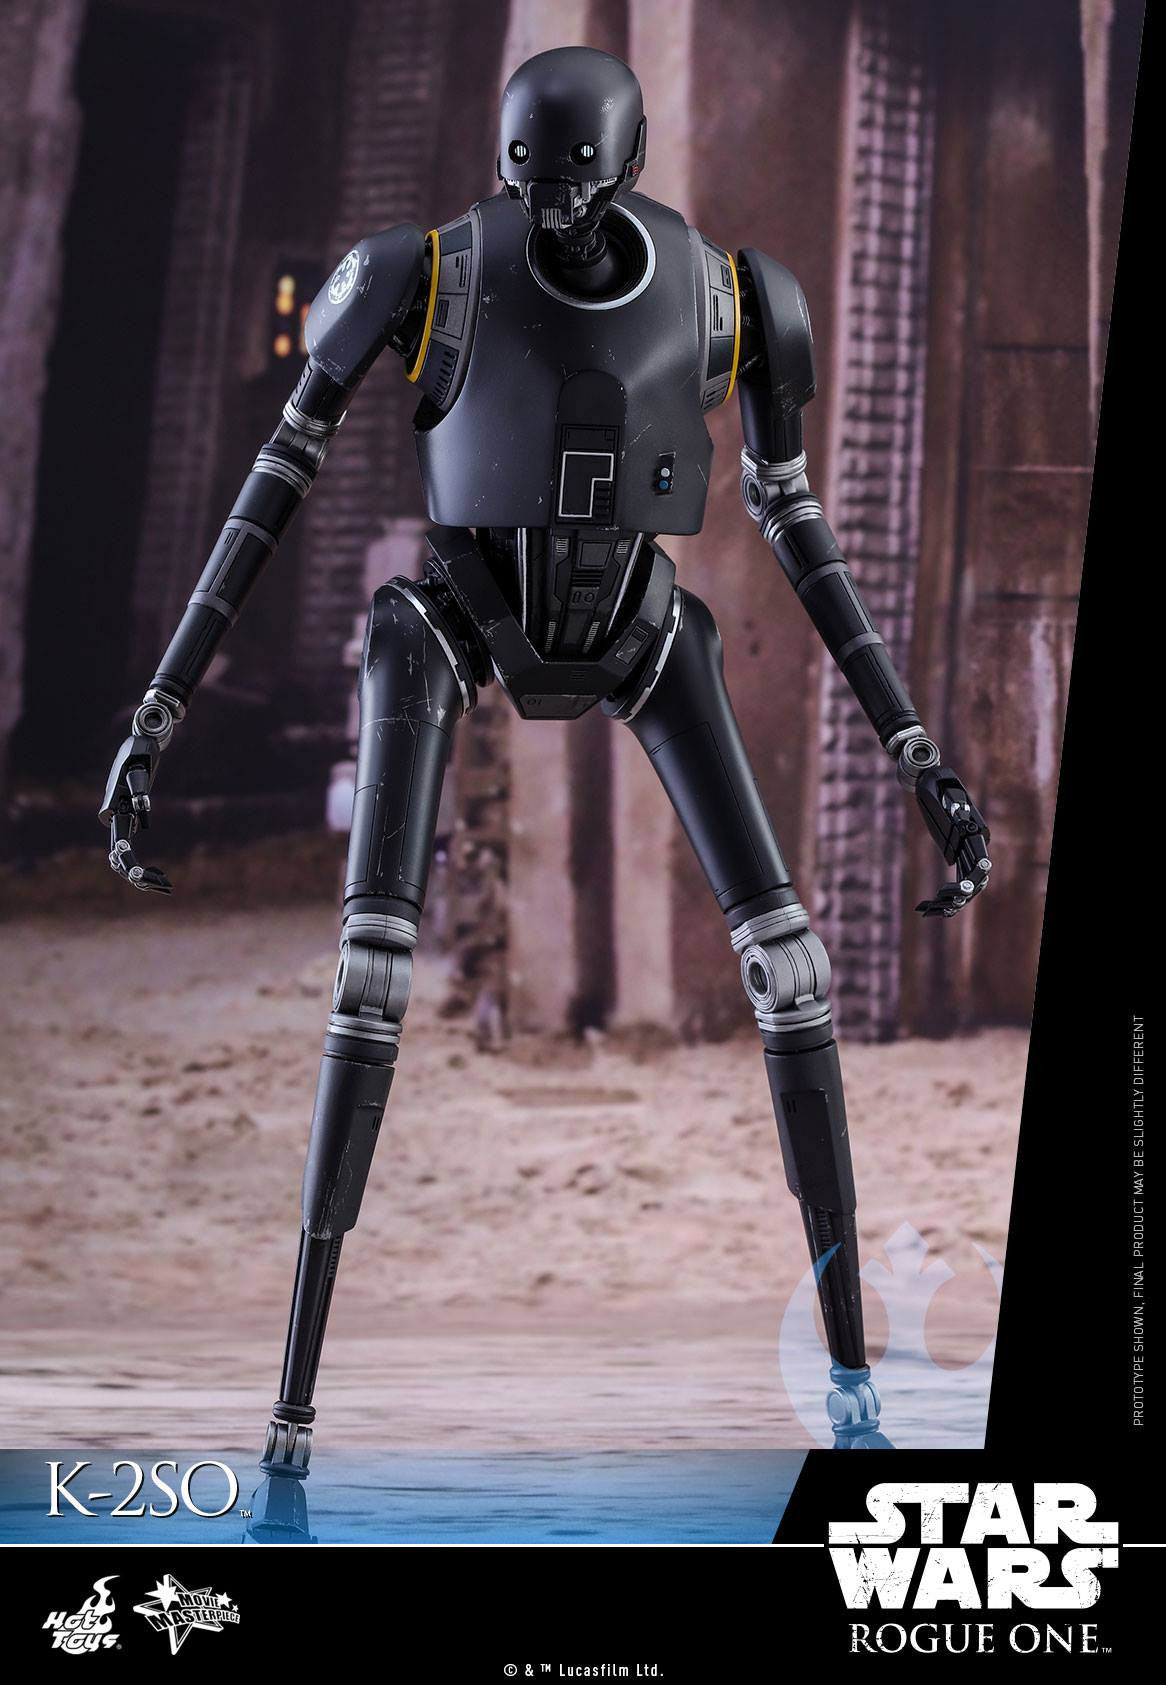 Hot Toys - MMS406 - Rogue One: A Star Wars Story - K-2SO - Marvelous Toys - 9